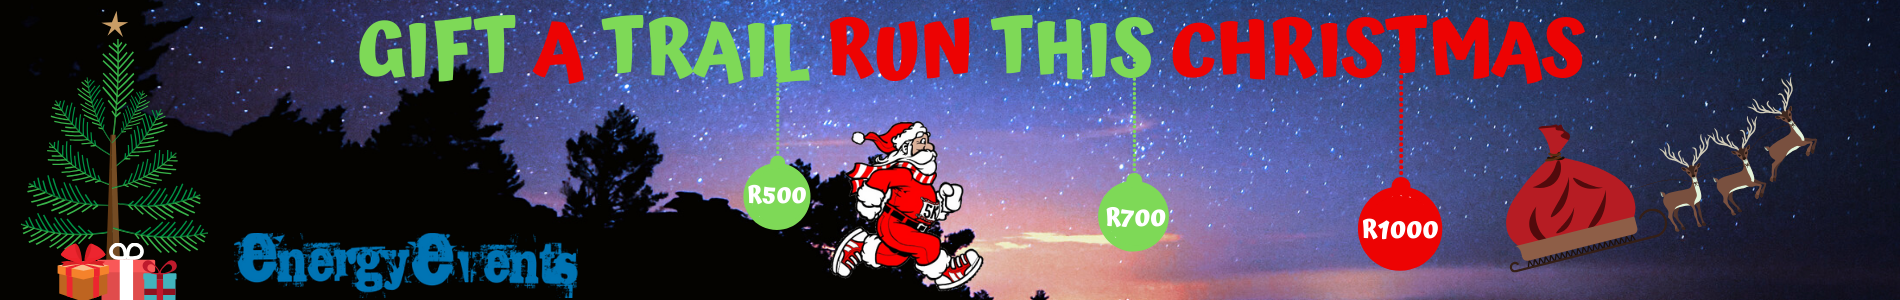 GIFT A TRAIL RUN WEBSITE